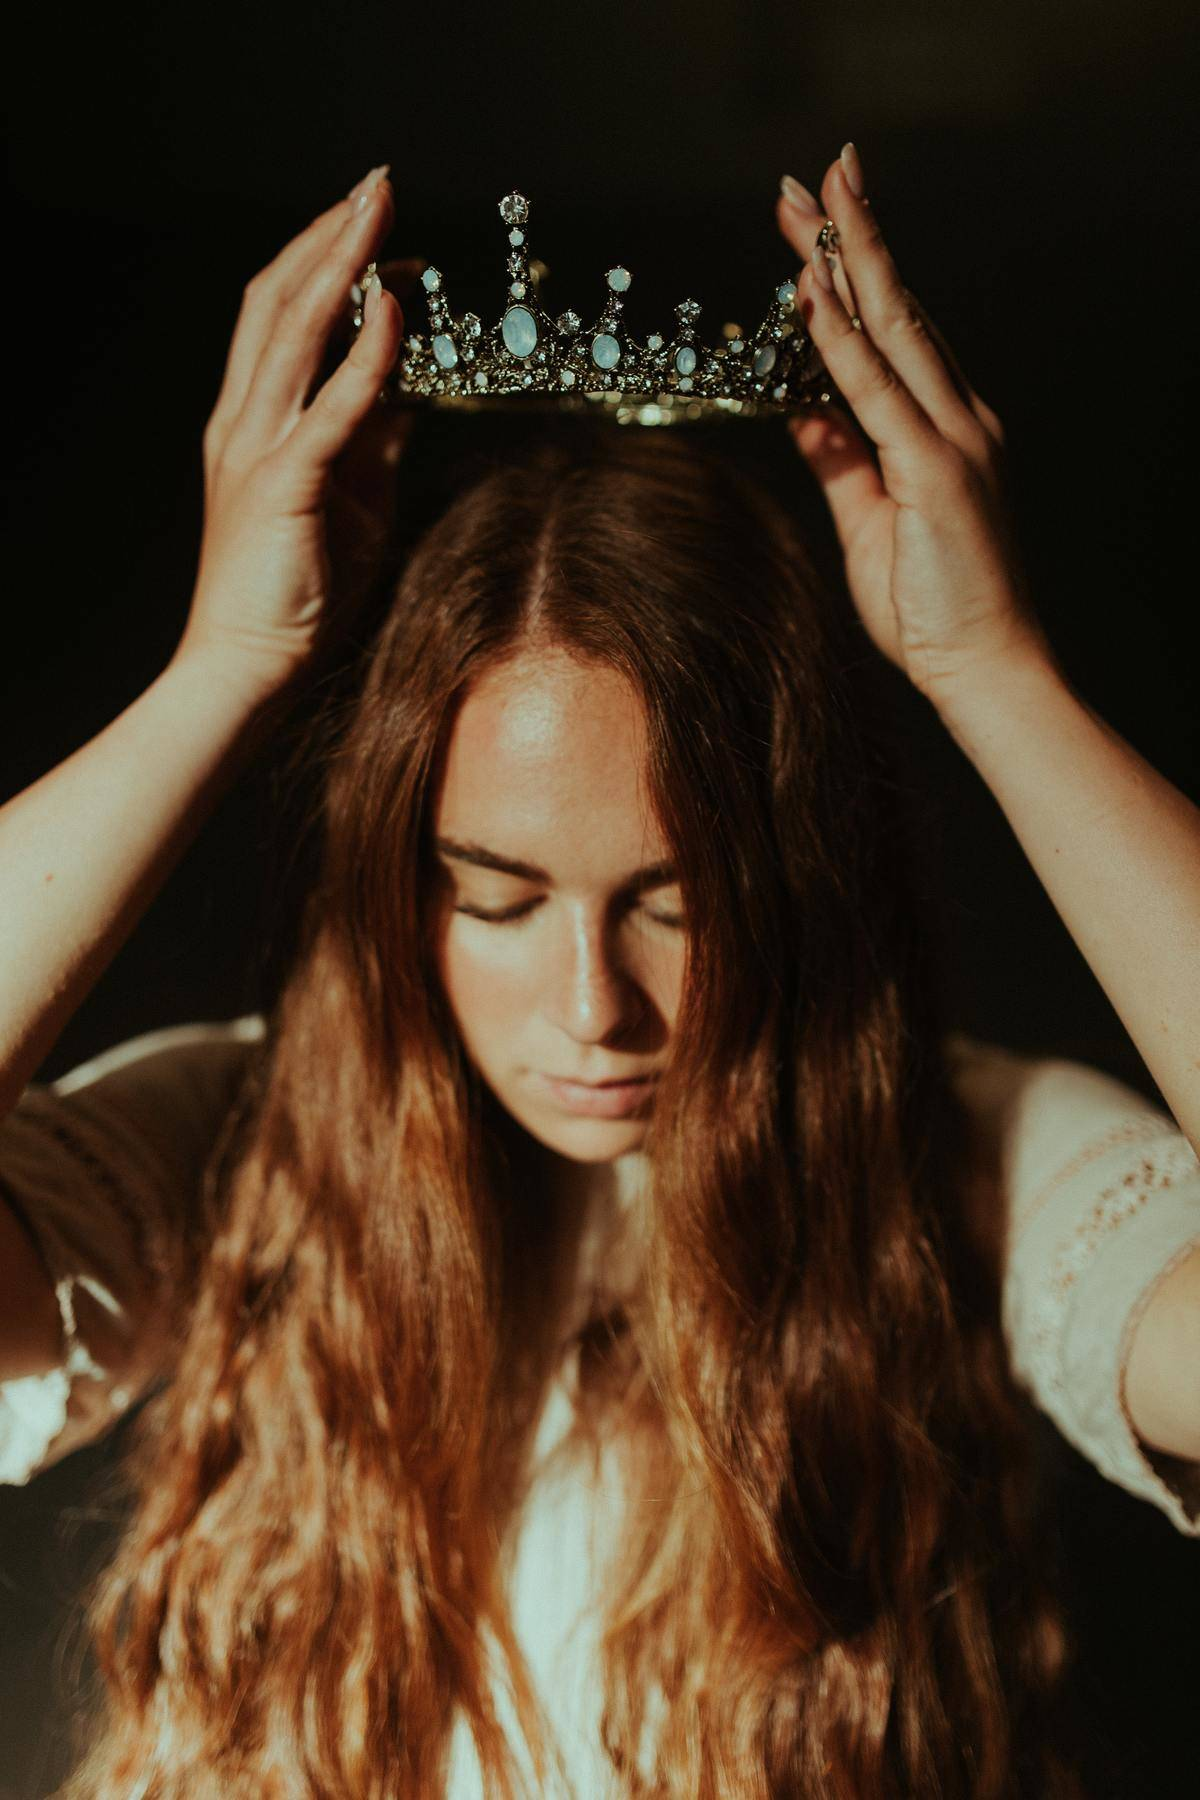 woman puts on her crown